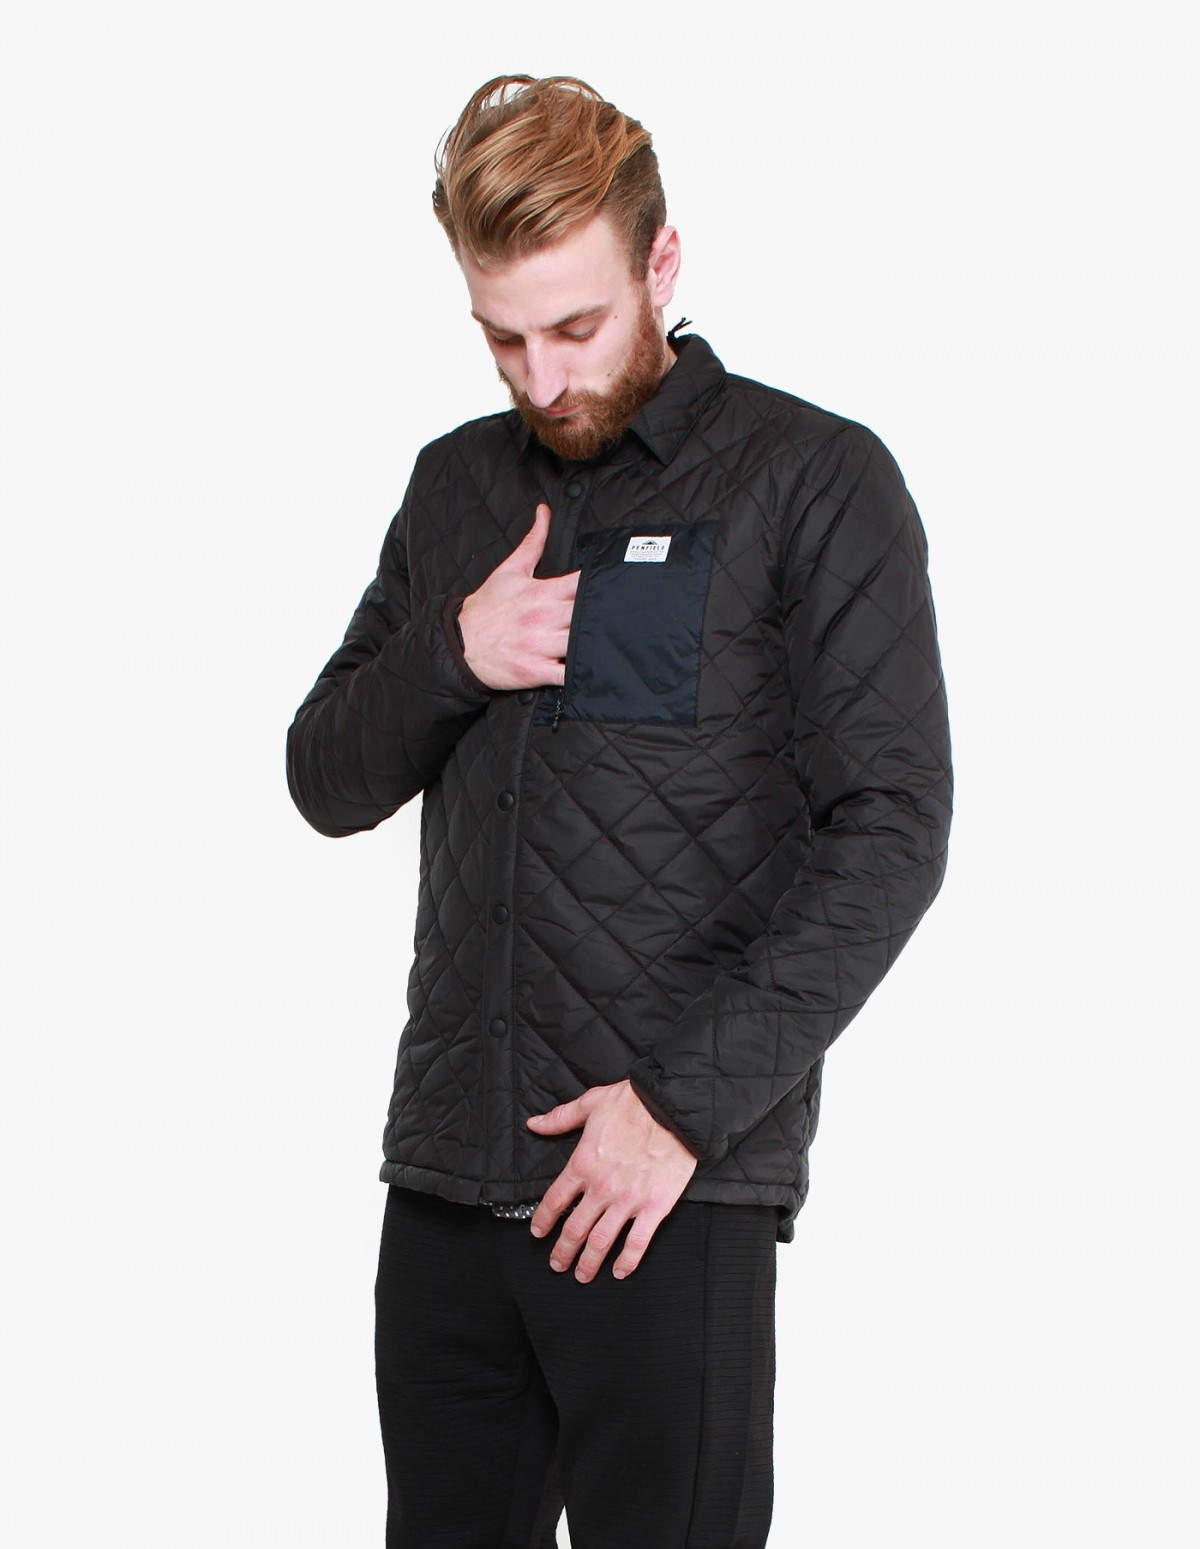 Penfield Courtland Polyester Jacket in Black